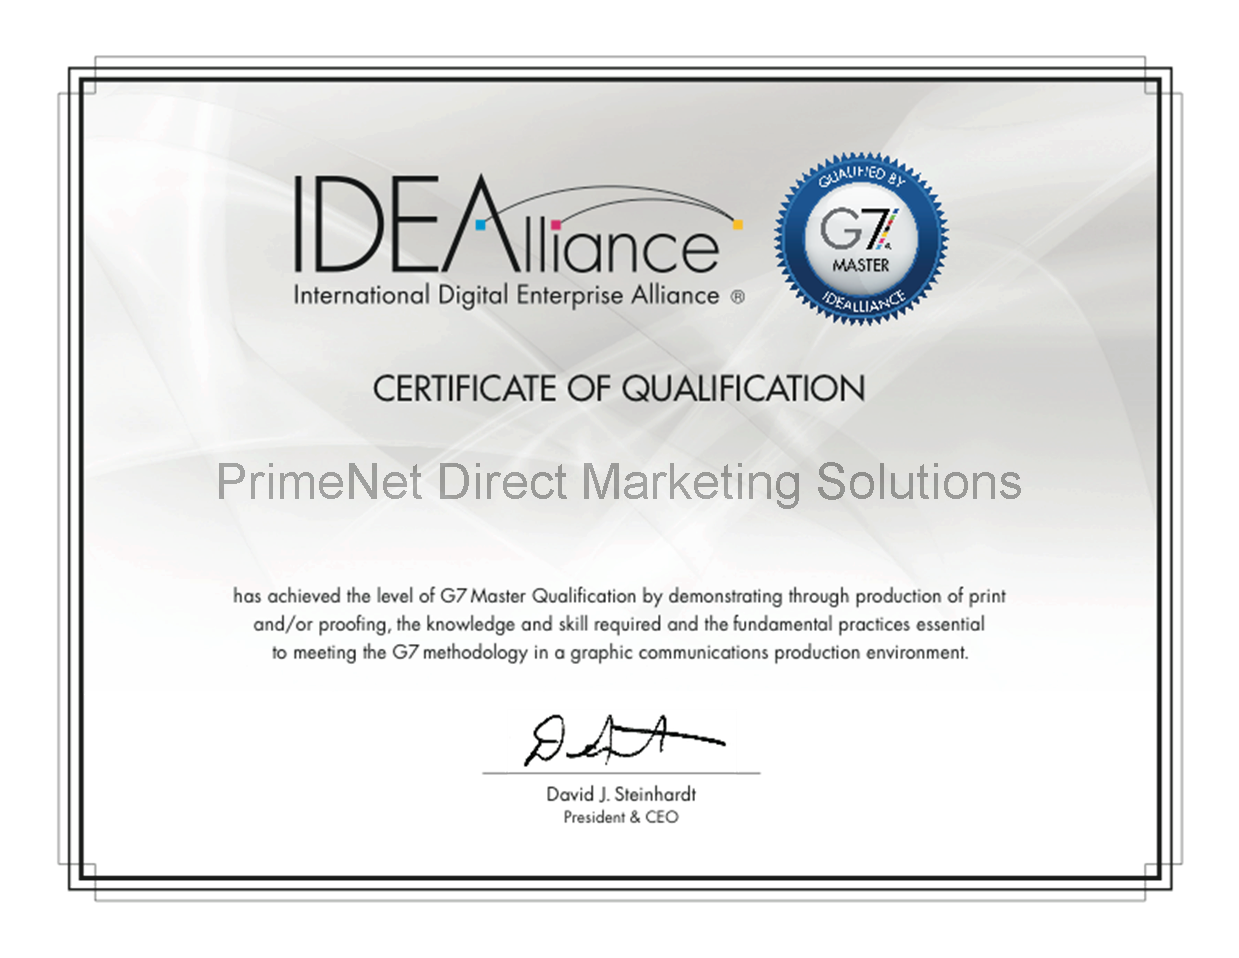 G7 Certified Printer Certificate PrimeNet Direct Mail